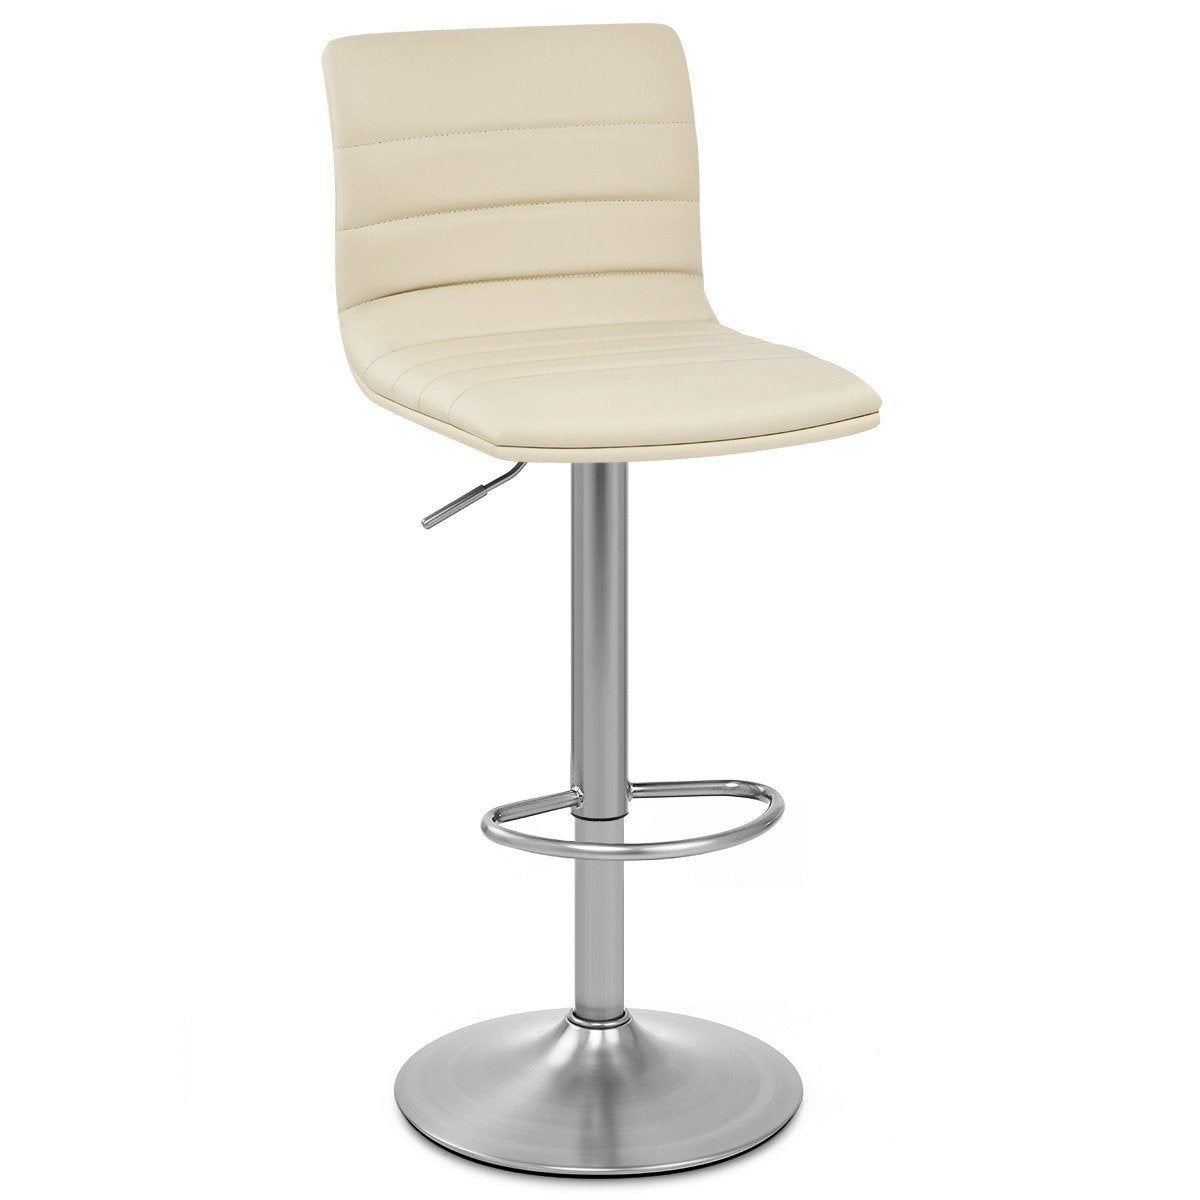 Tabouret De Bar Chic Simili Cuir Creme Linear Mdt Simili Cuir Bar Chic Et Tabouret